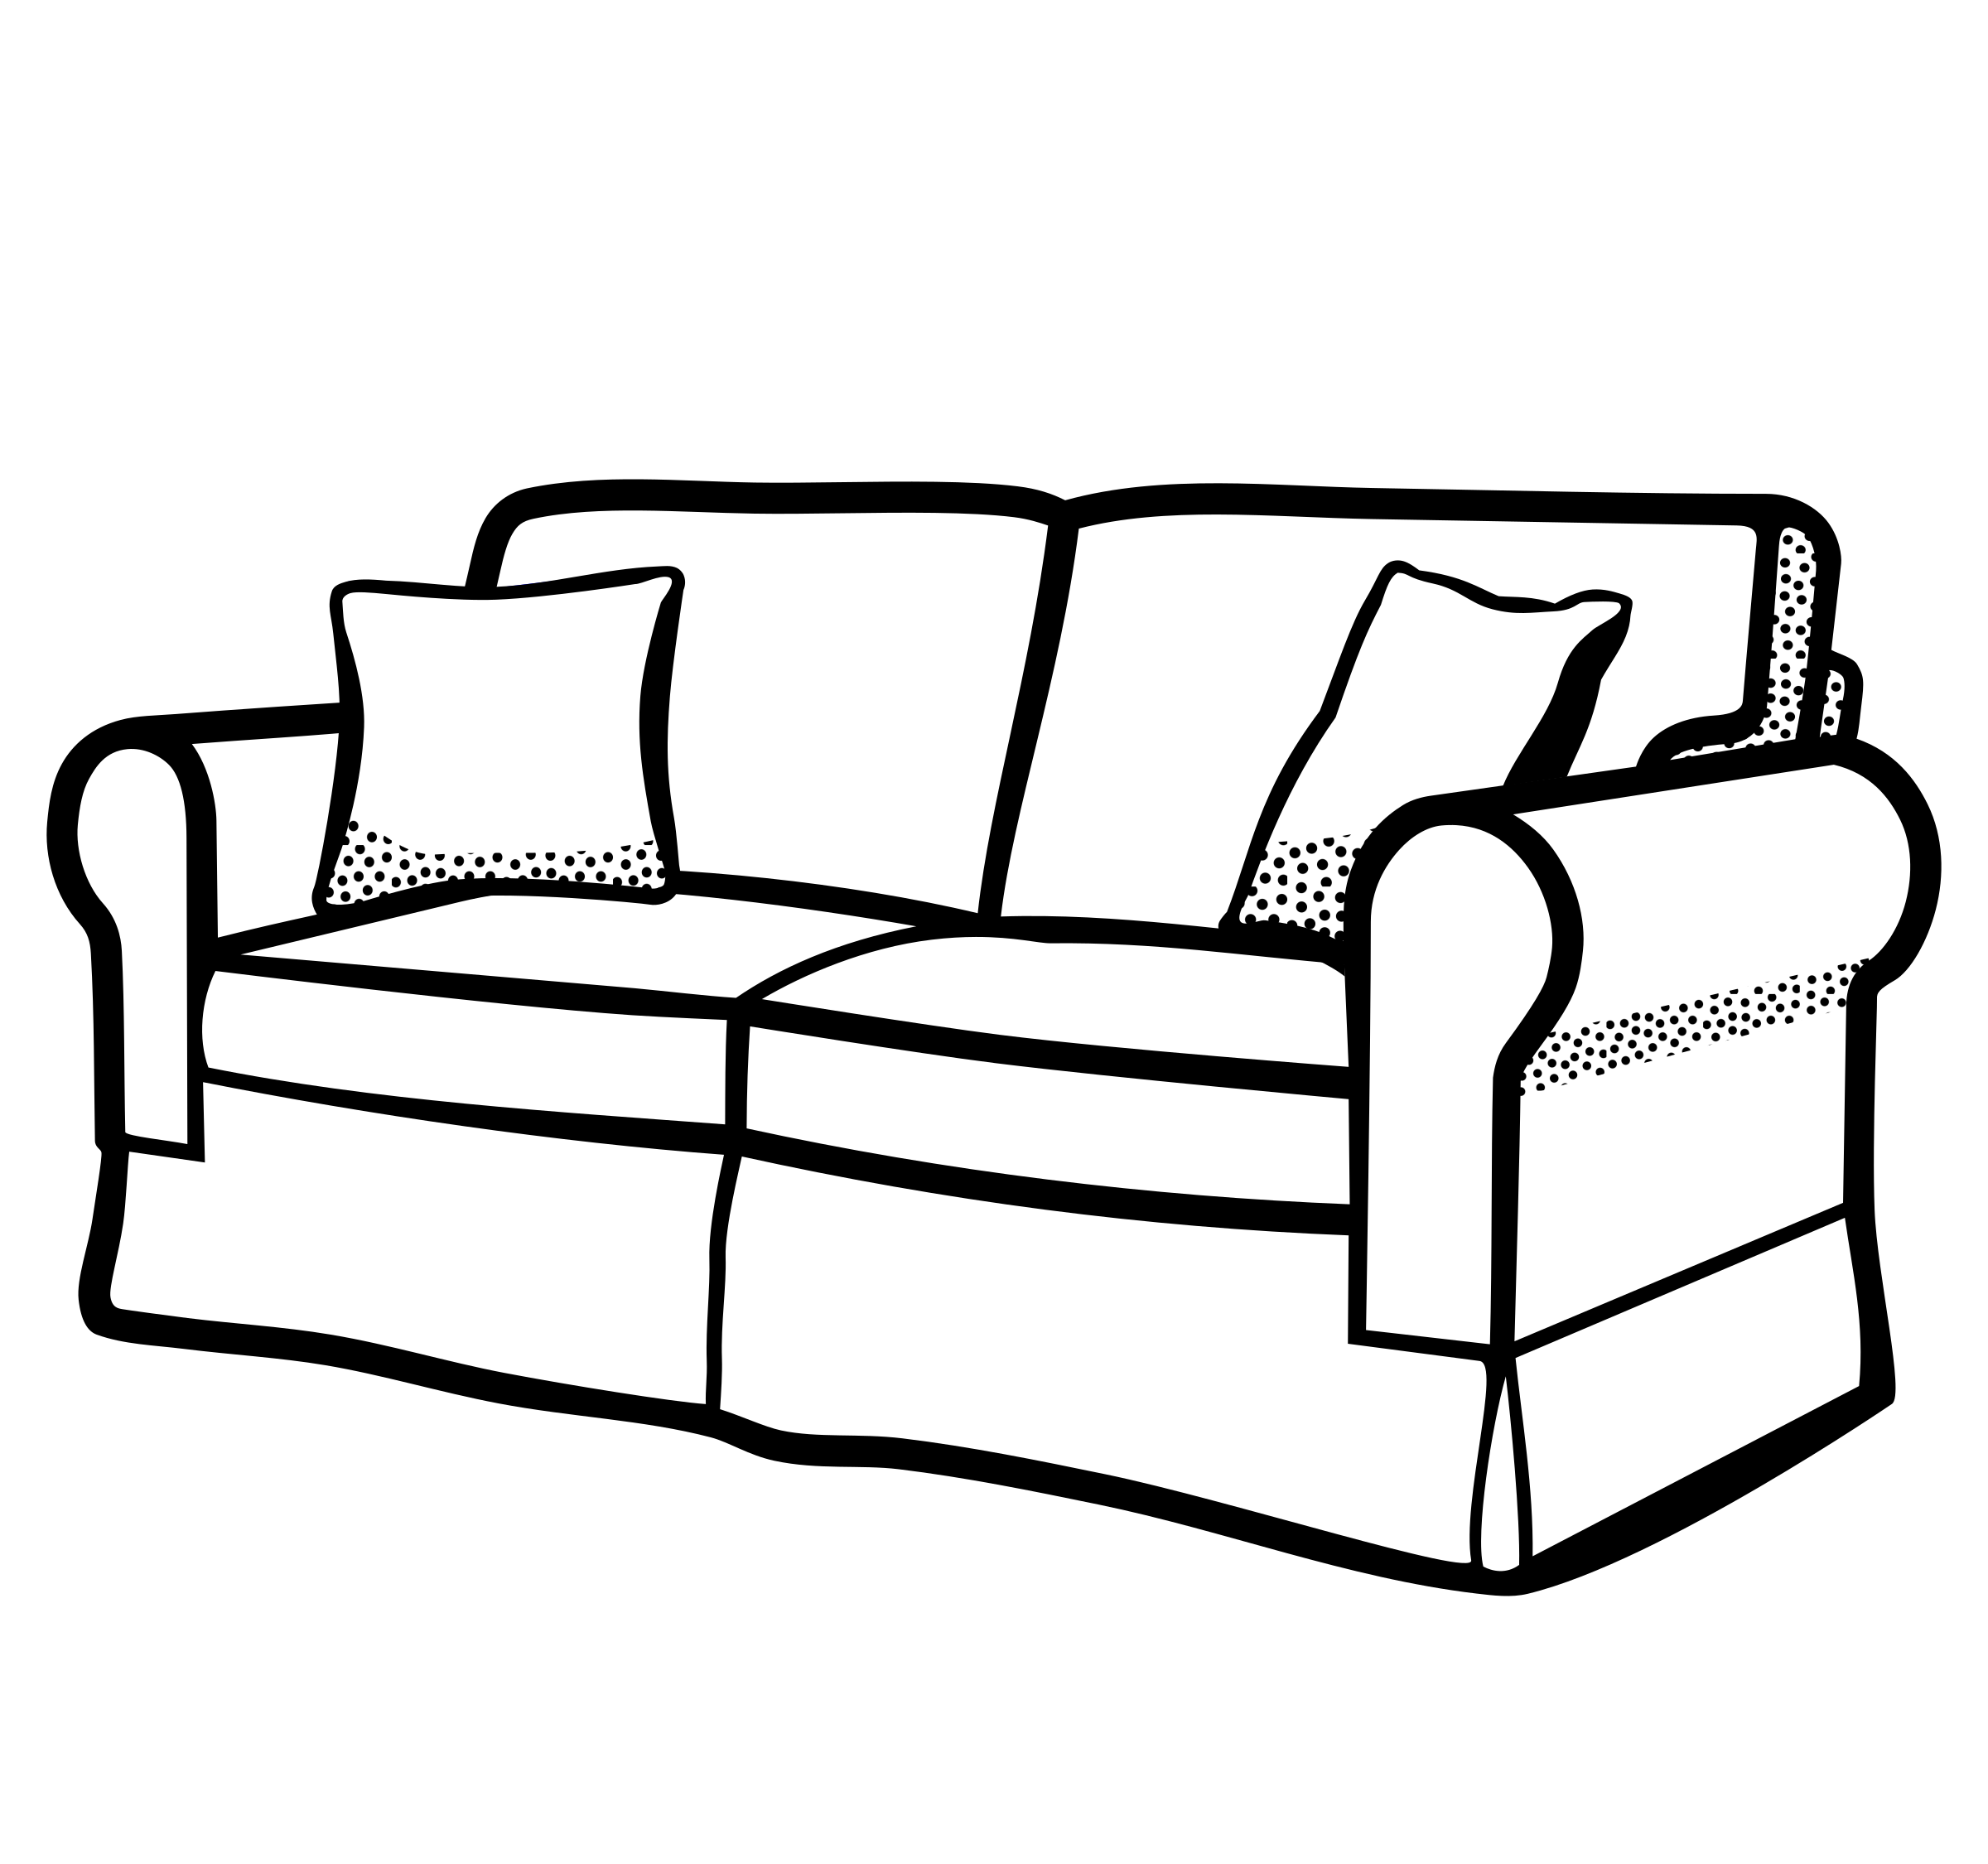 sofa - lineart by frankes